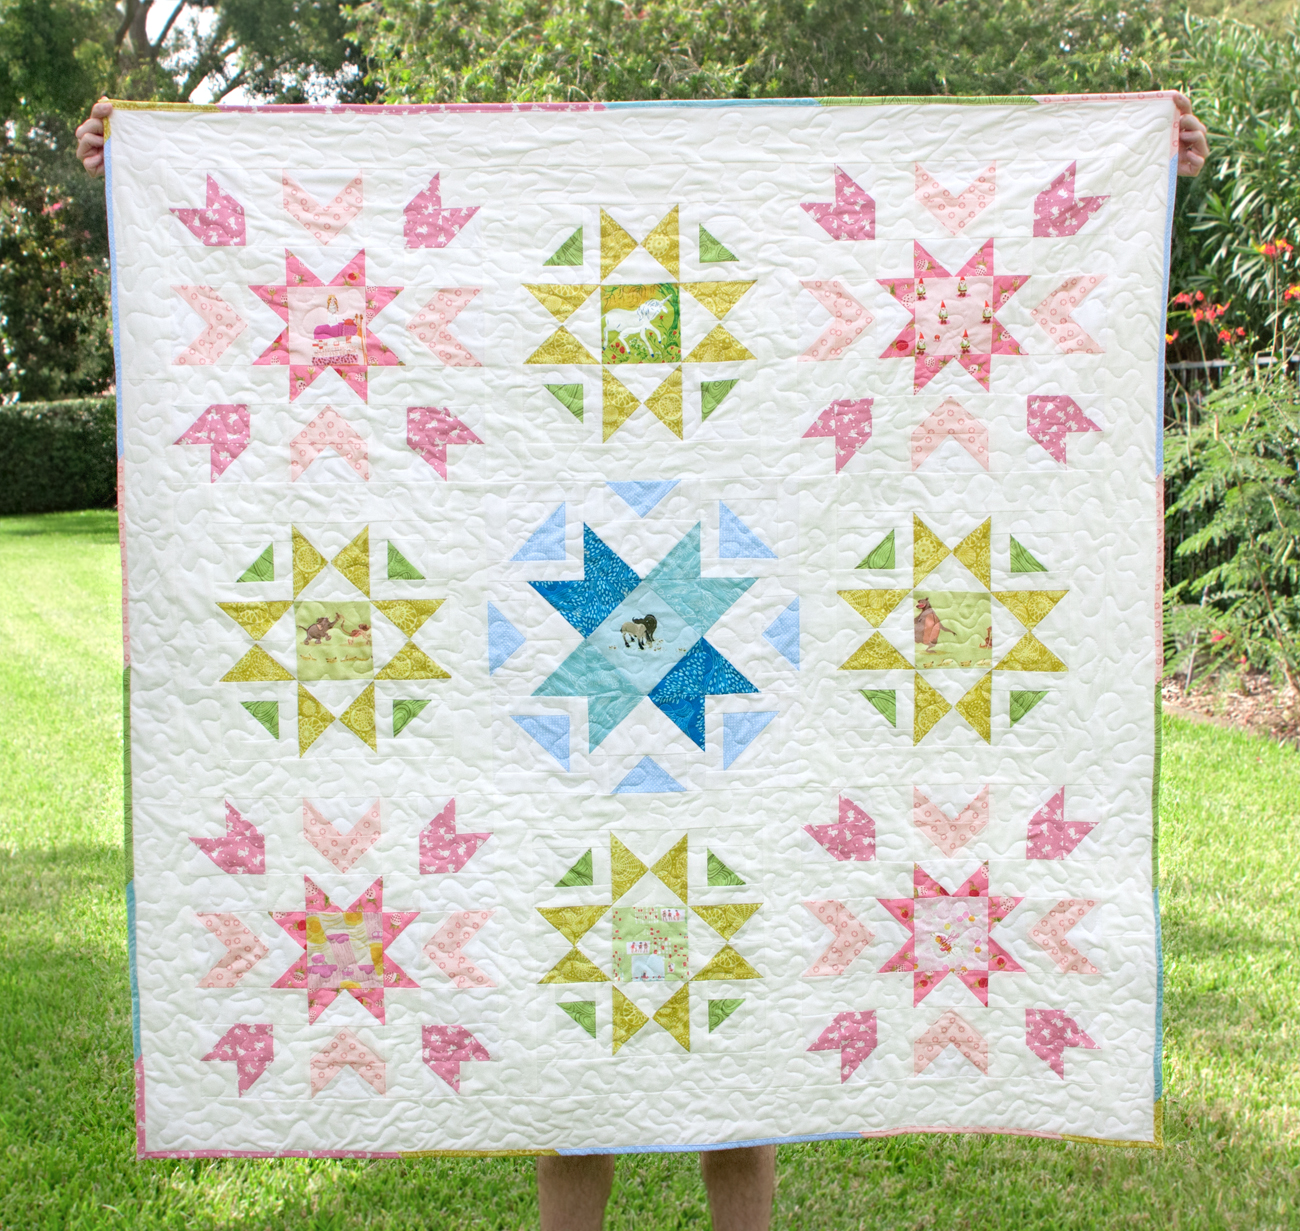 starfield quilt pattern